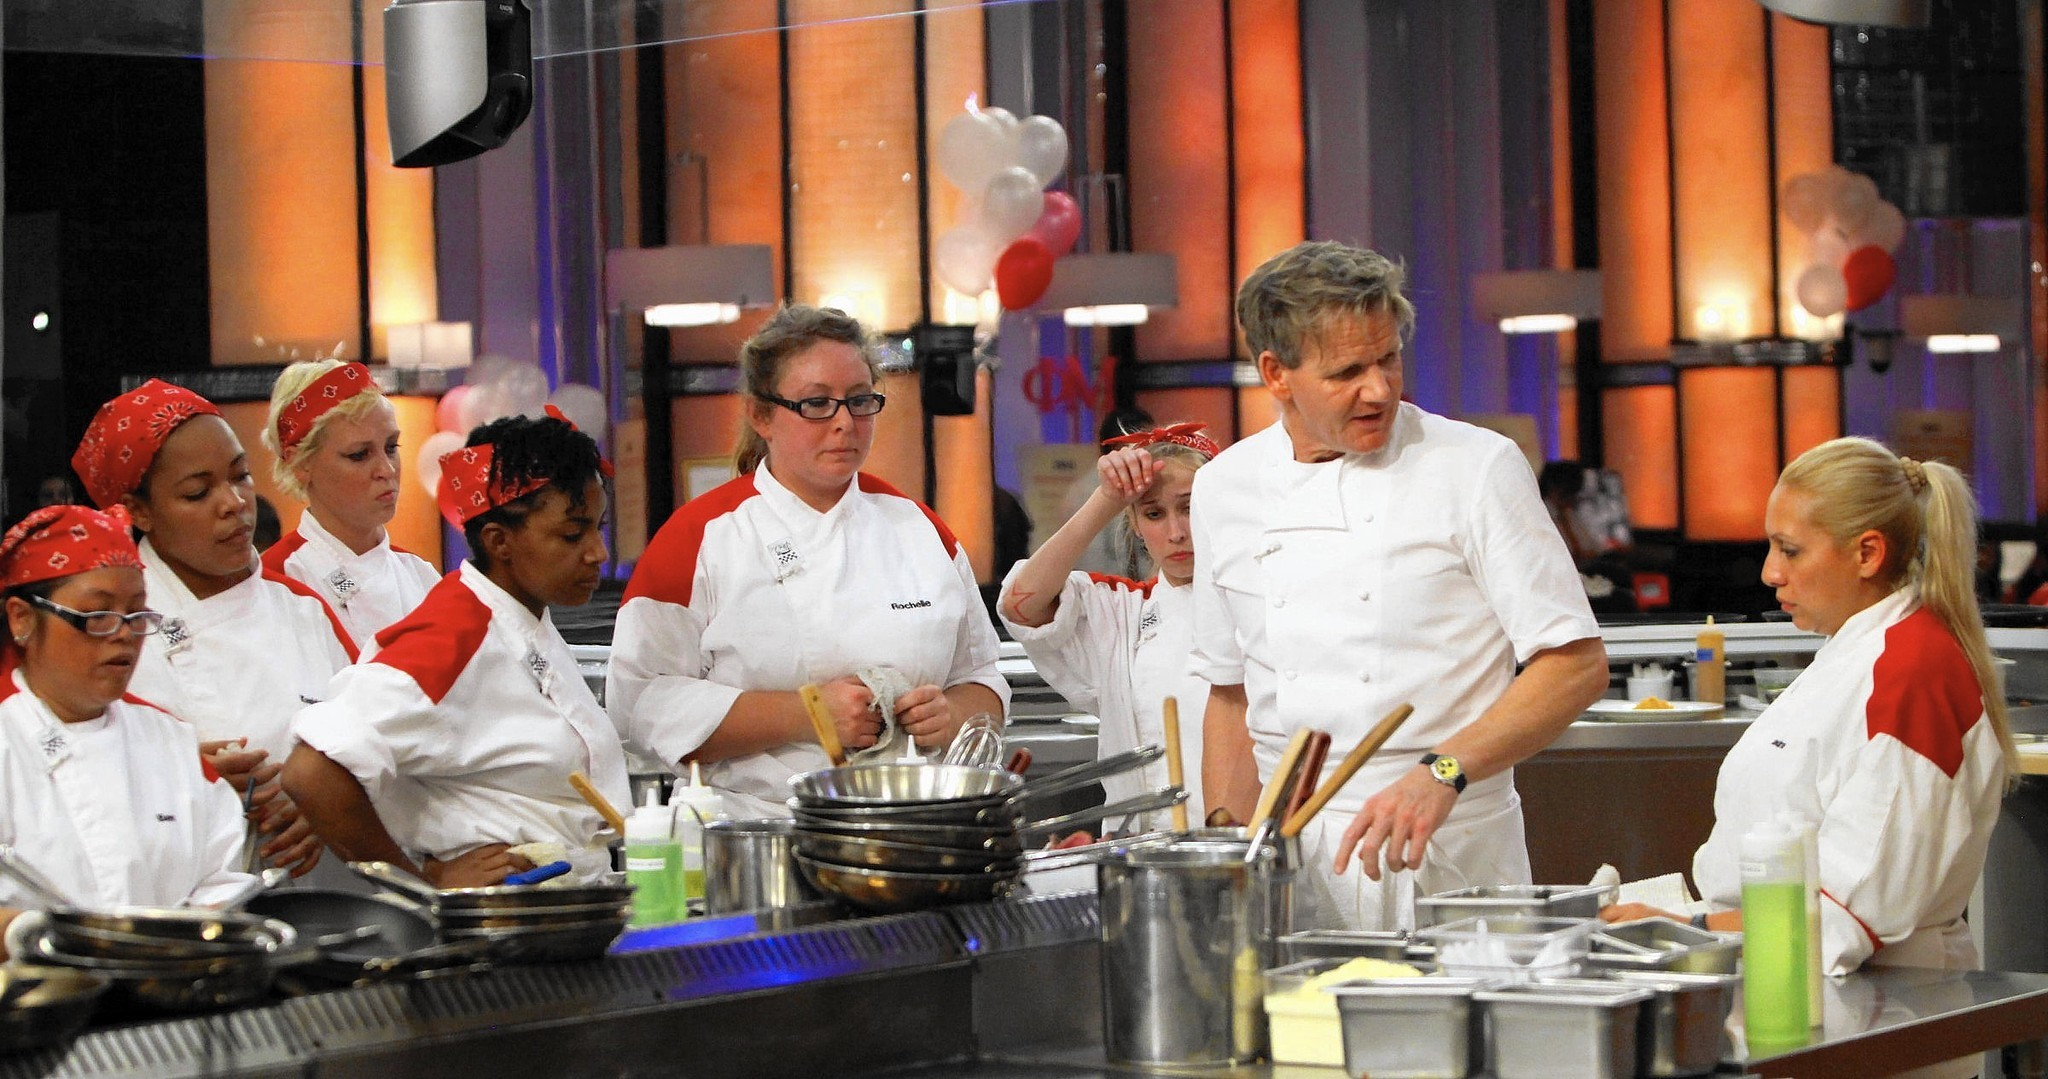 Hell 39 s kitchen season 15 of fox series debuts in january for Watch hell s kitchen season 16